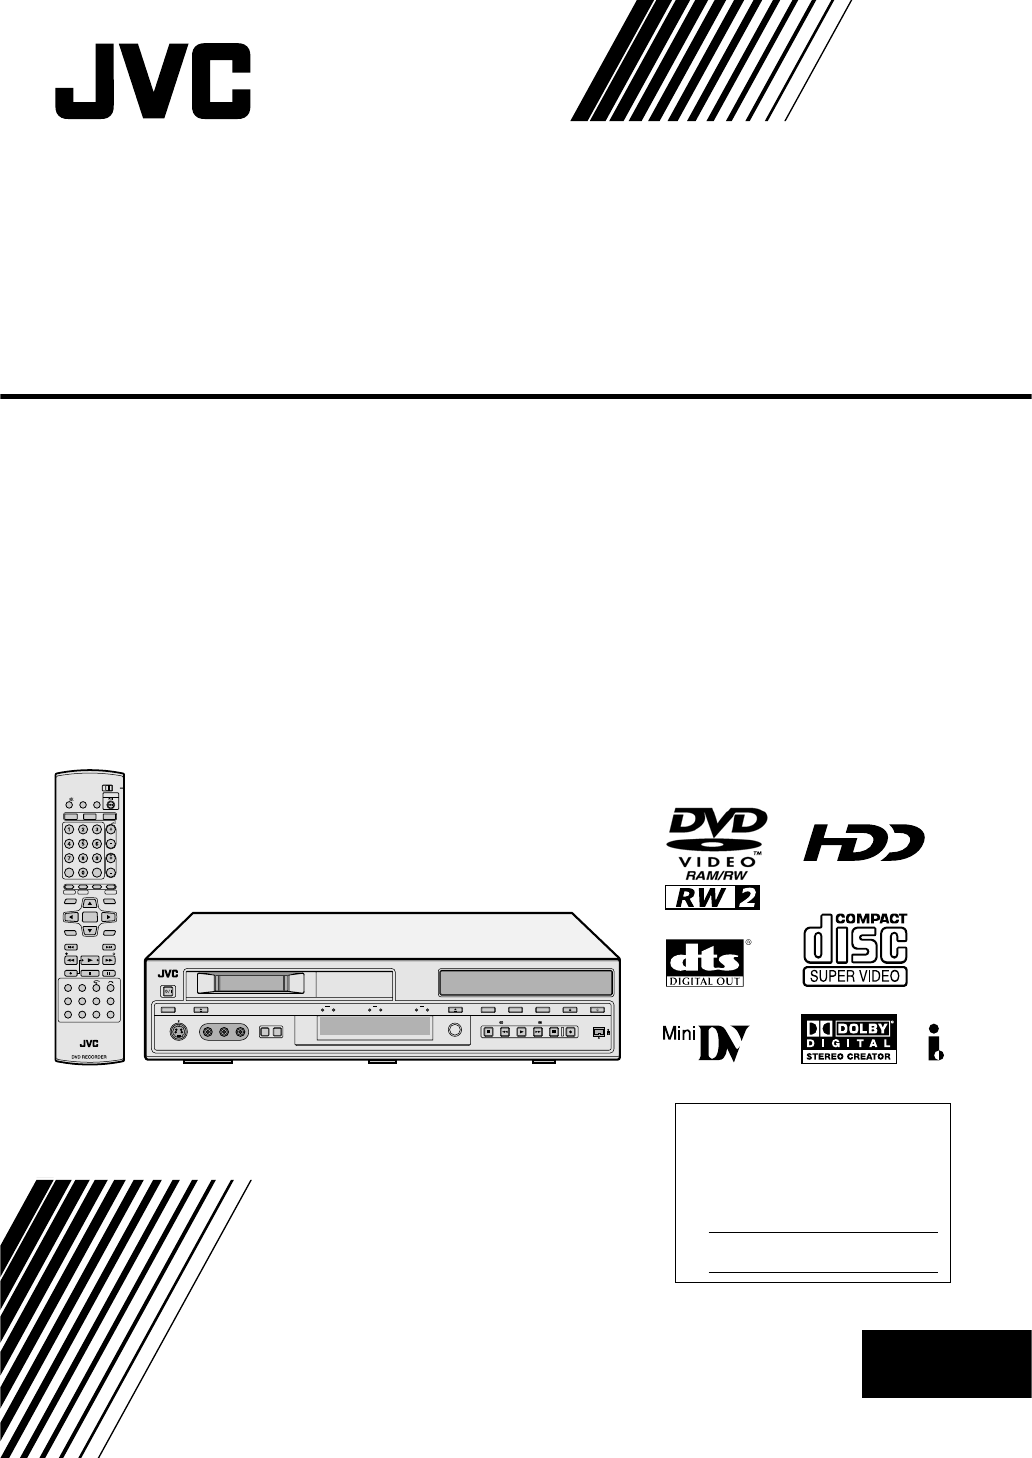 User manual JVC SR-DVM700 (88 pages)